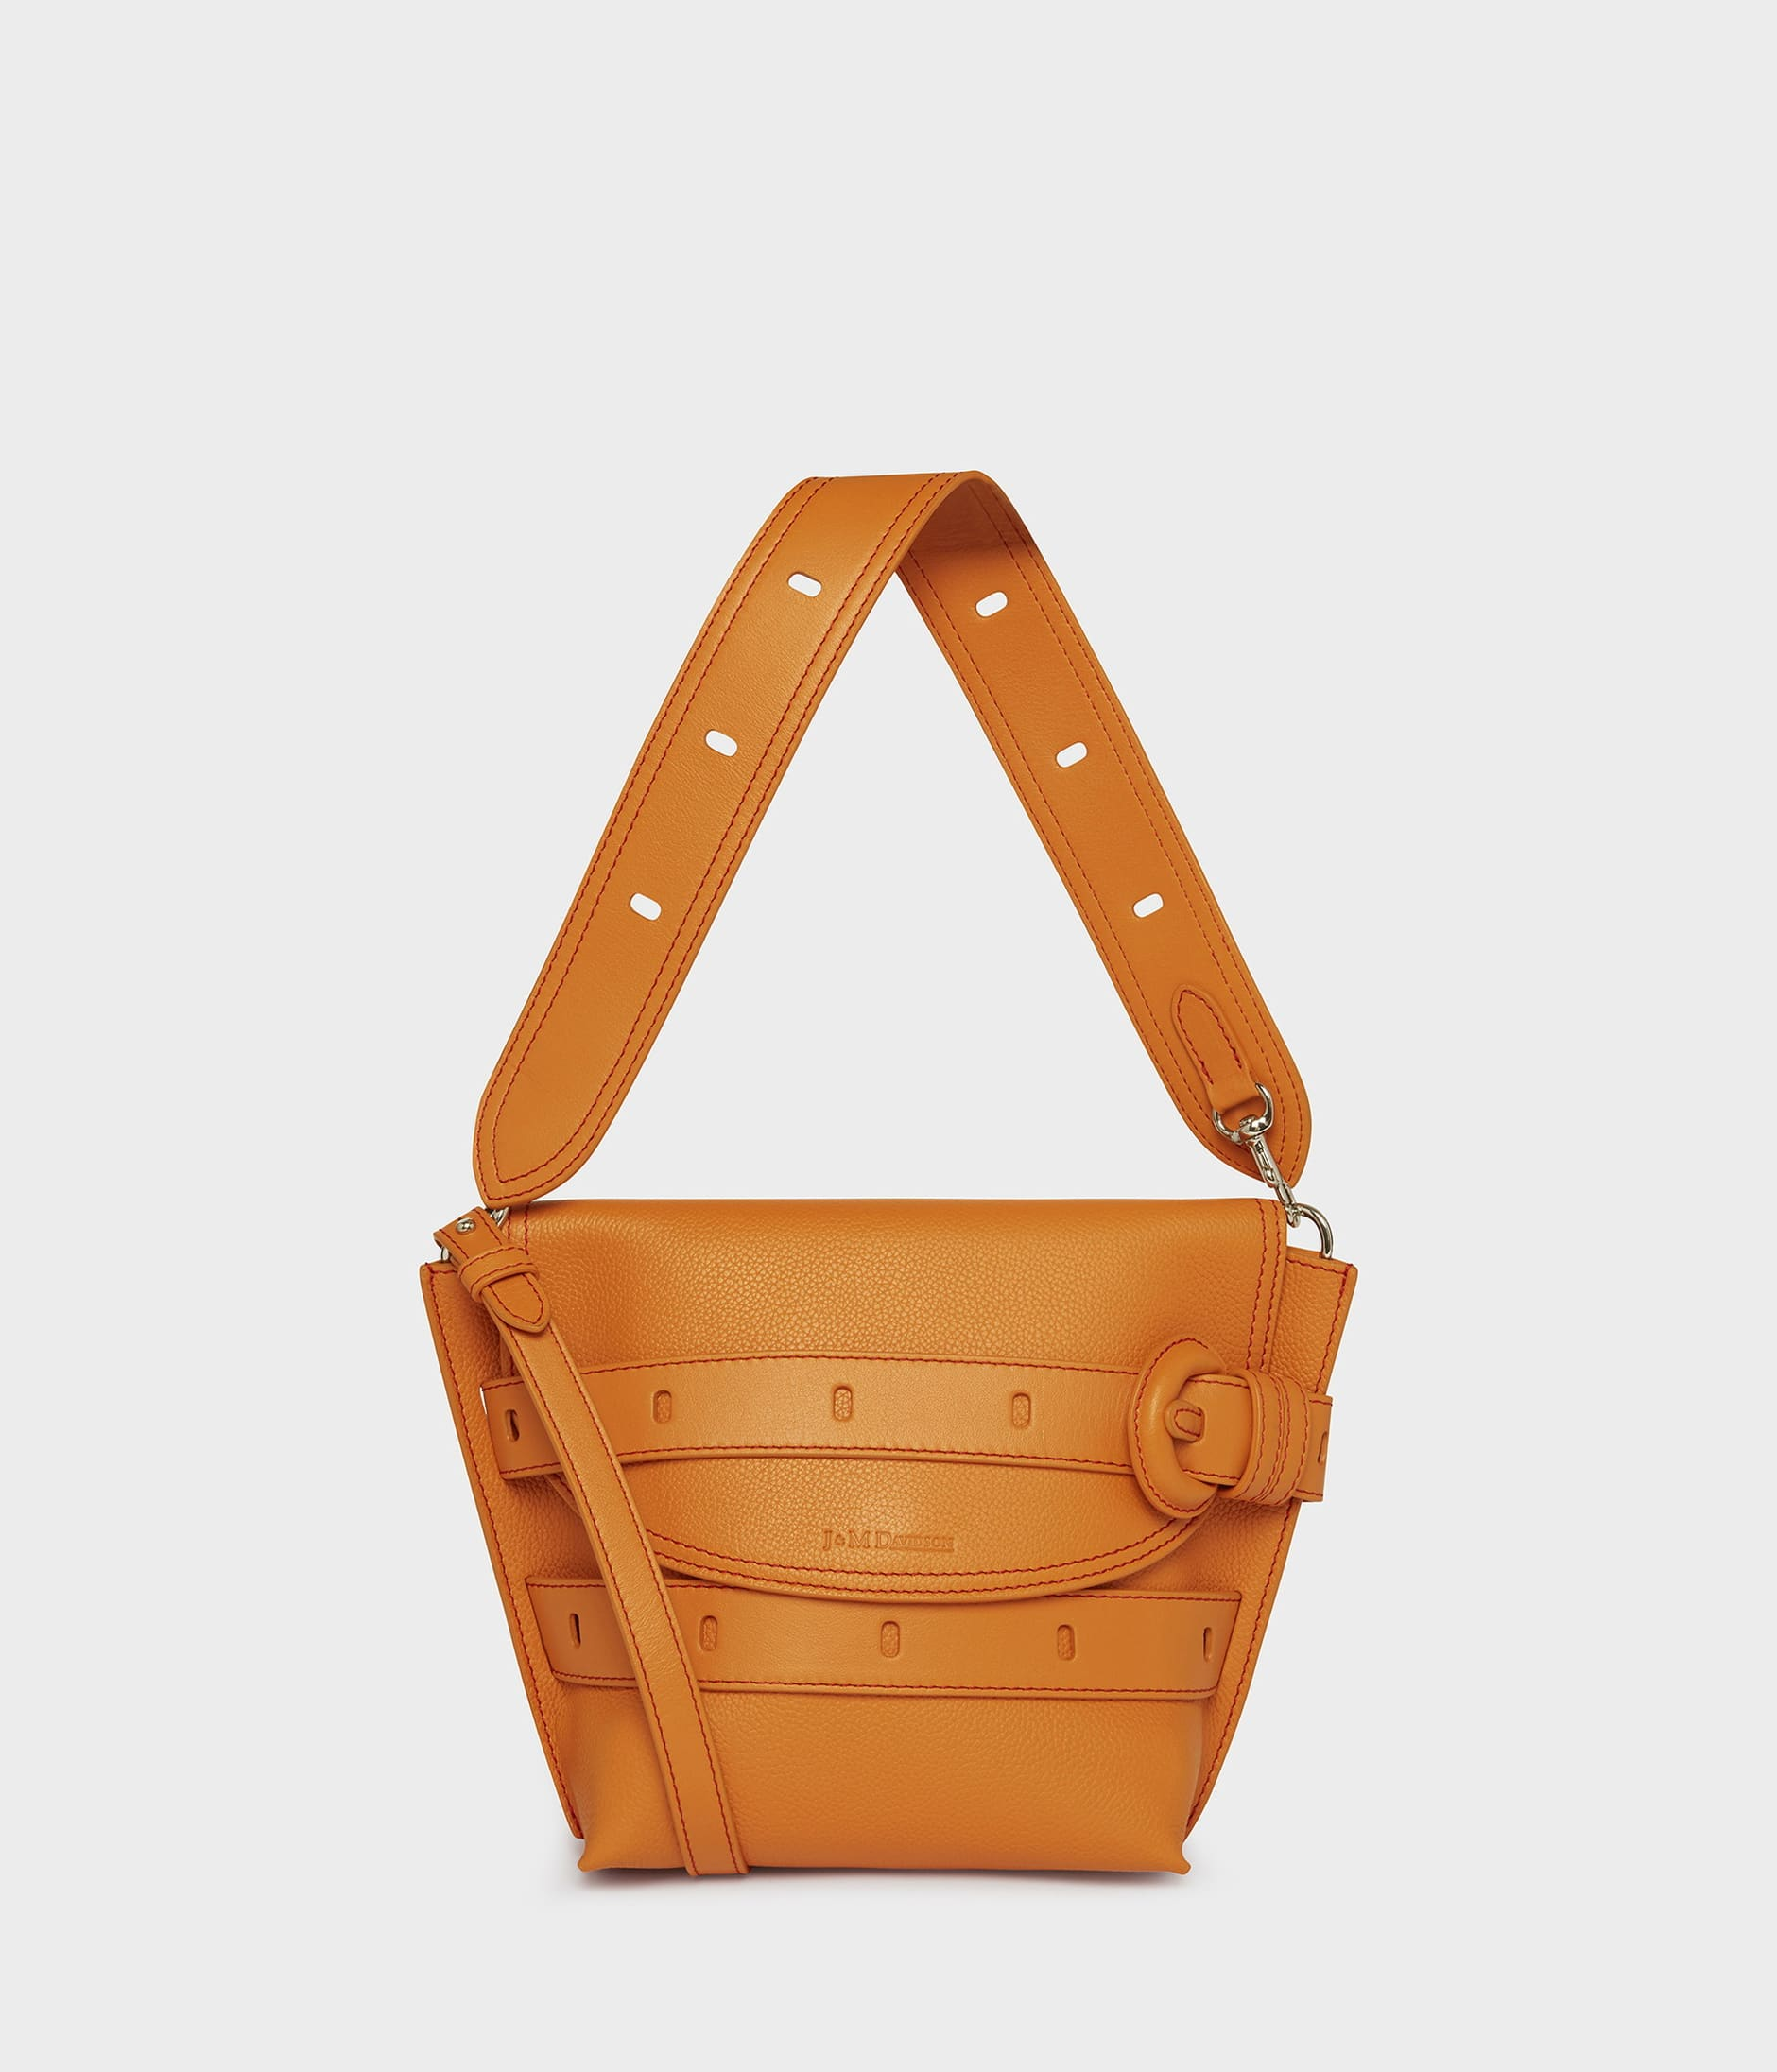 THE BELT BAG 詳細画像 TANGERINE ORANGE 1